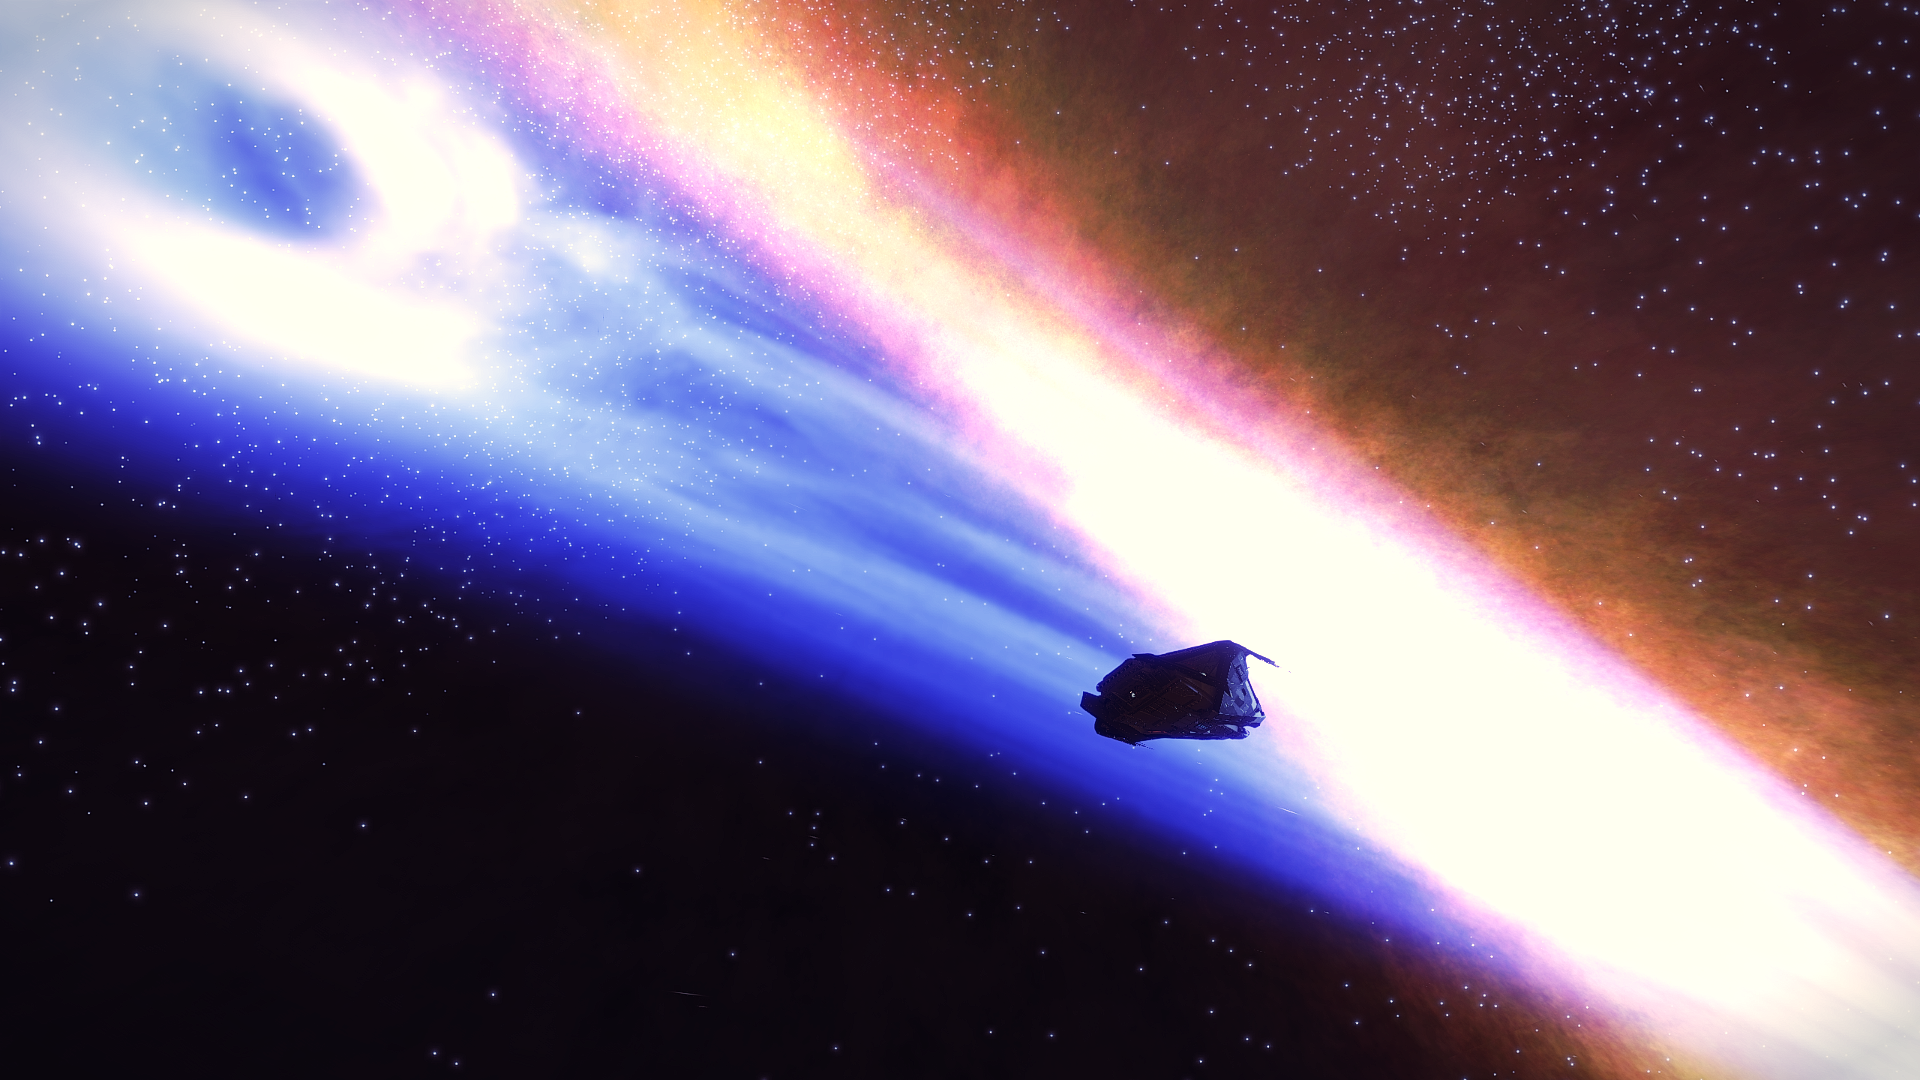 A Krait Phantom backlit by the wildly spinning tail of a neutron star in the Eos Free MP-M d8-294 star system. Elite: Dangerous, Distant Worlds 2 expedition.